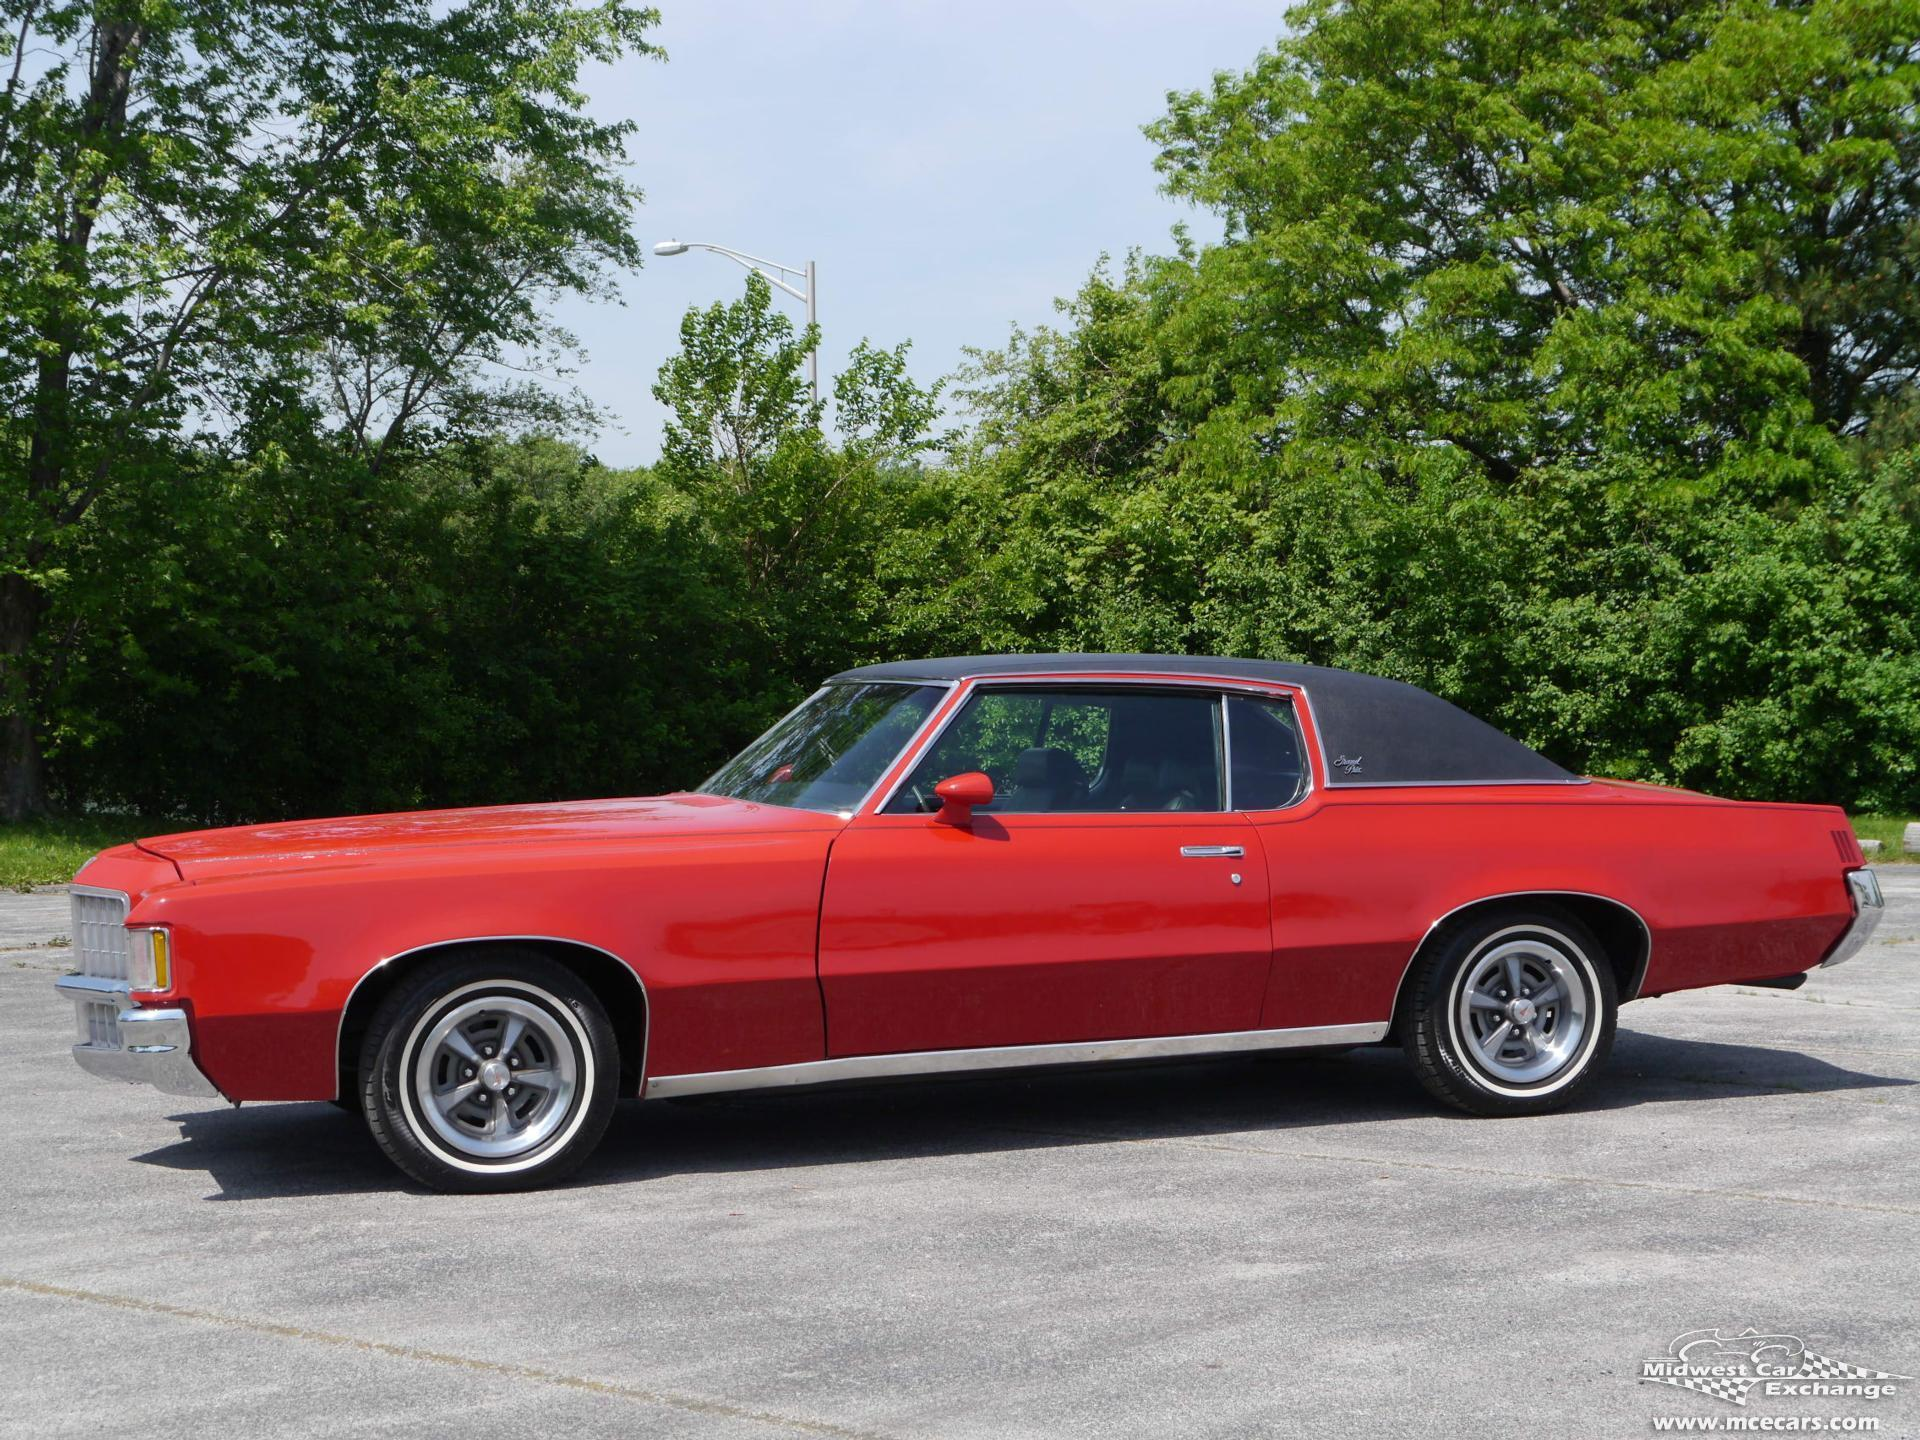 1972 Pontiac Grand Prix | Midwest Car Exchange